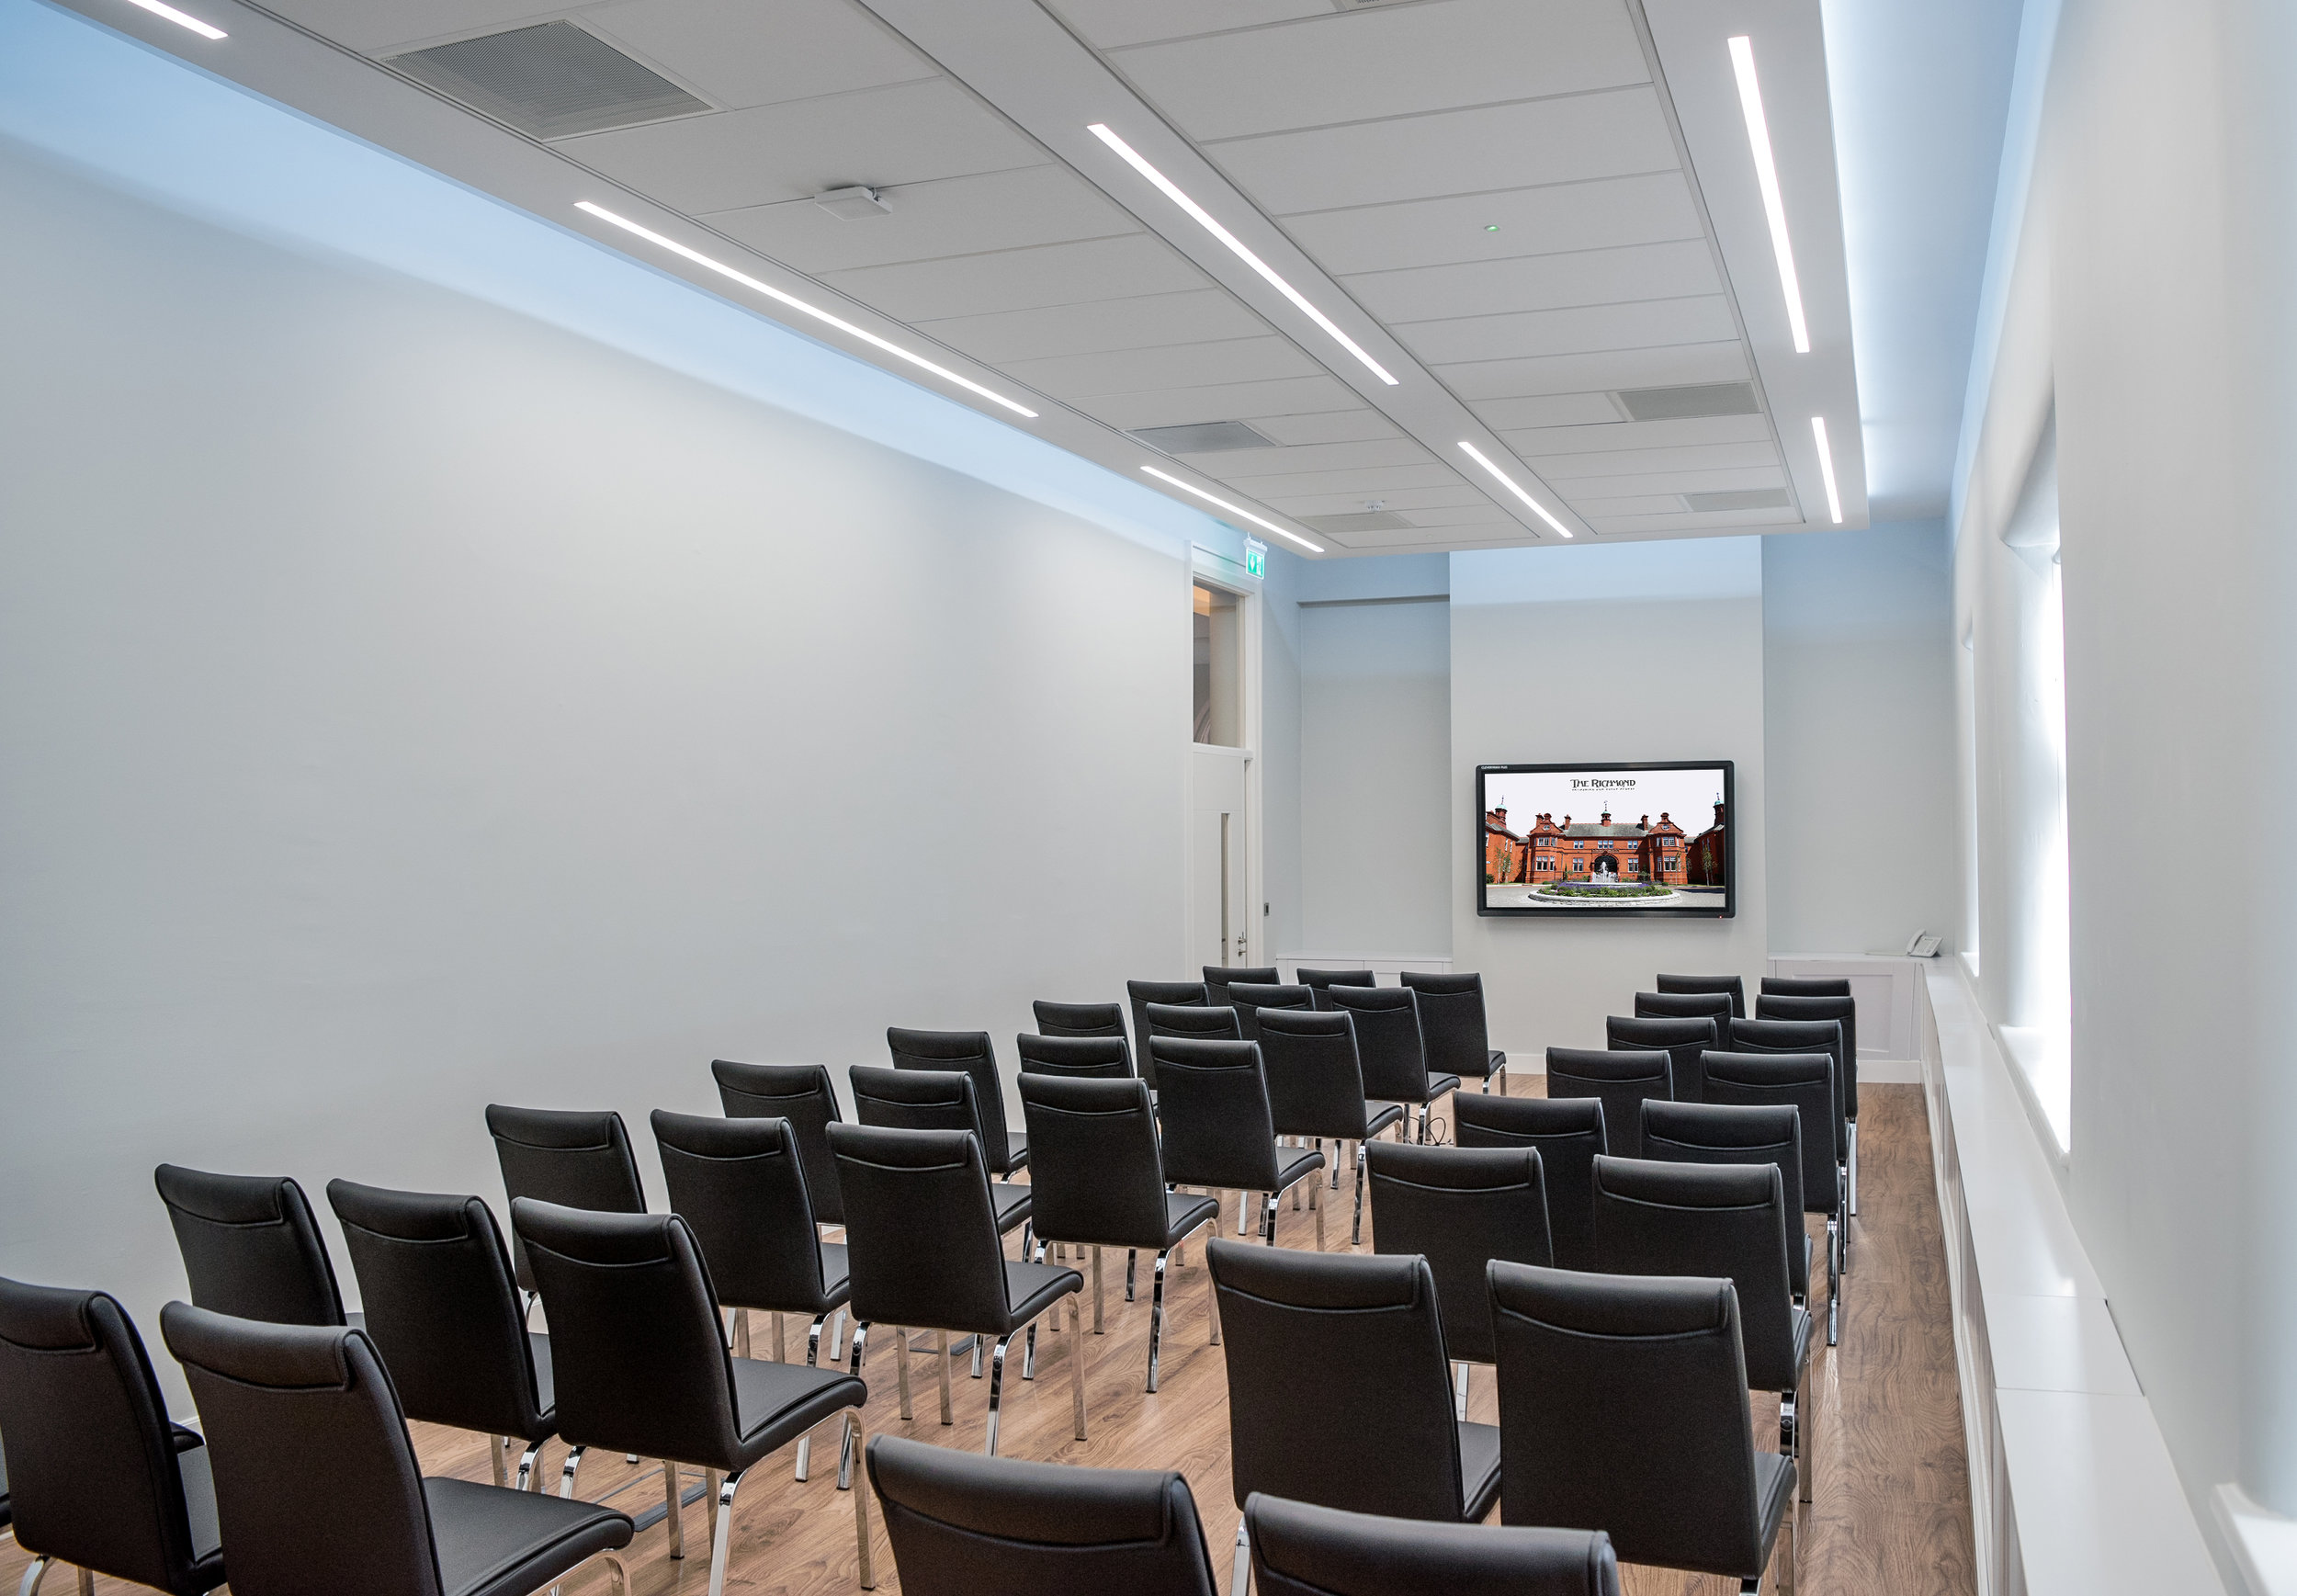 Education Room - The Education room is a multifunctional room with plentiful natural light that can be arranged in various layouts for meetings and events to suit your needs. It is a suitable option for education sessions and seminars, with AV equipment and dimmable lighting, it can seat 26 in a classroom style.